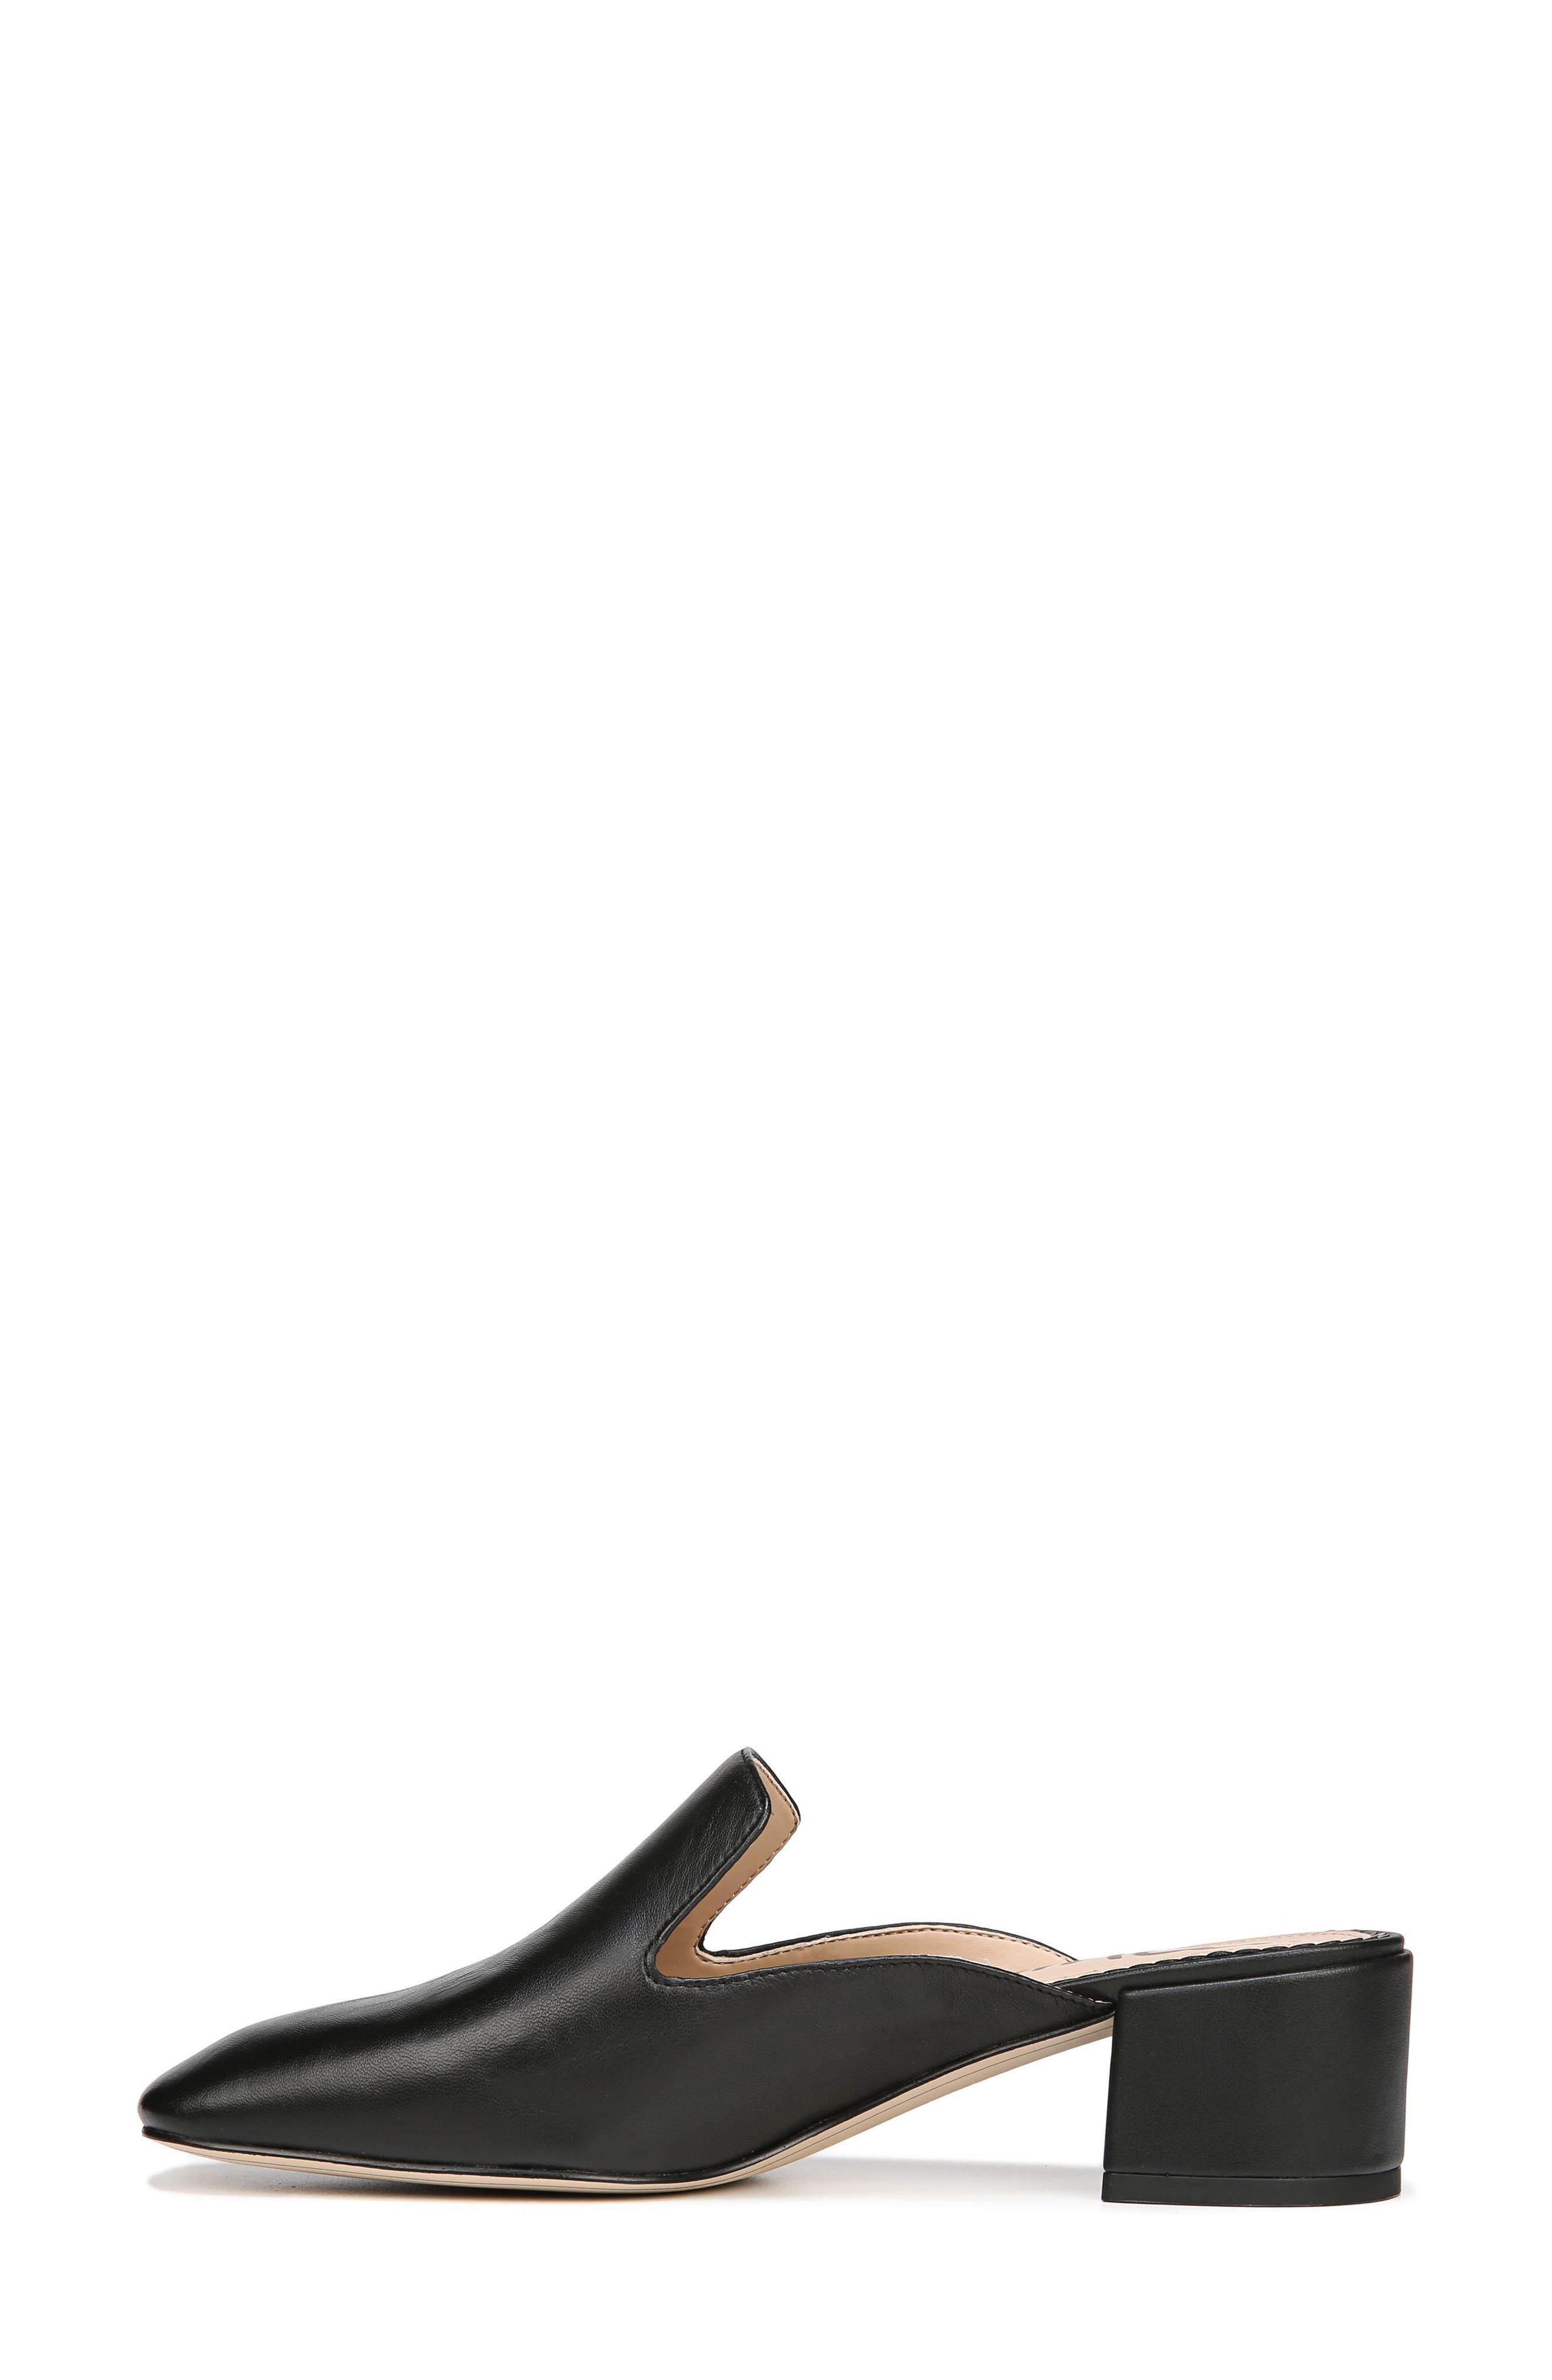 Adair Loafer Mule,                             Alternate thumbnail 7, color,                             BLACK LEATHER